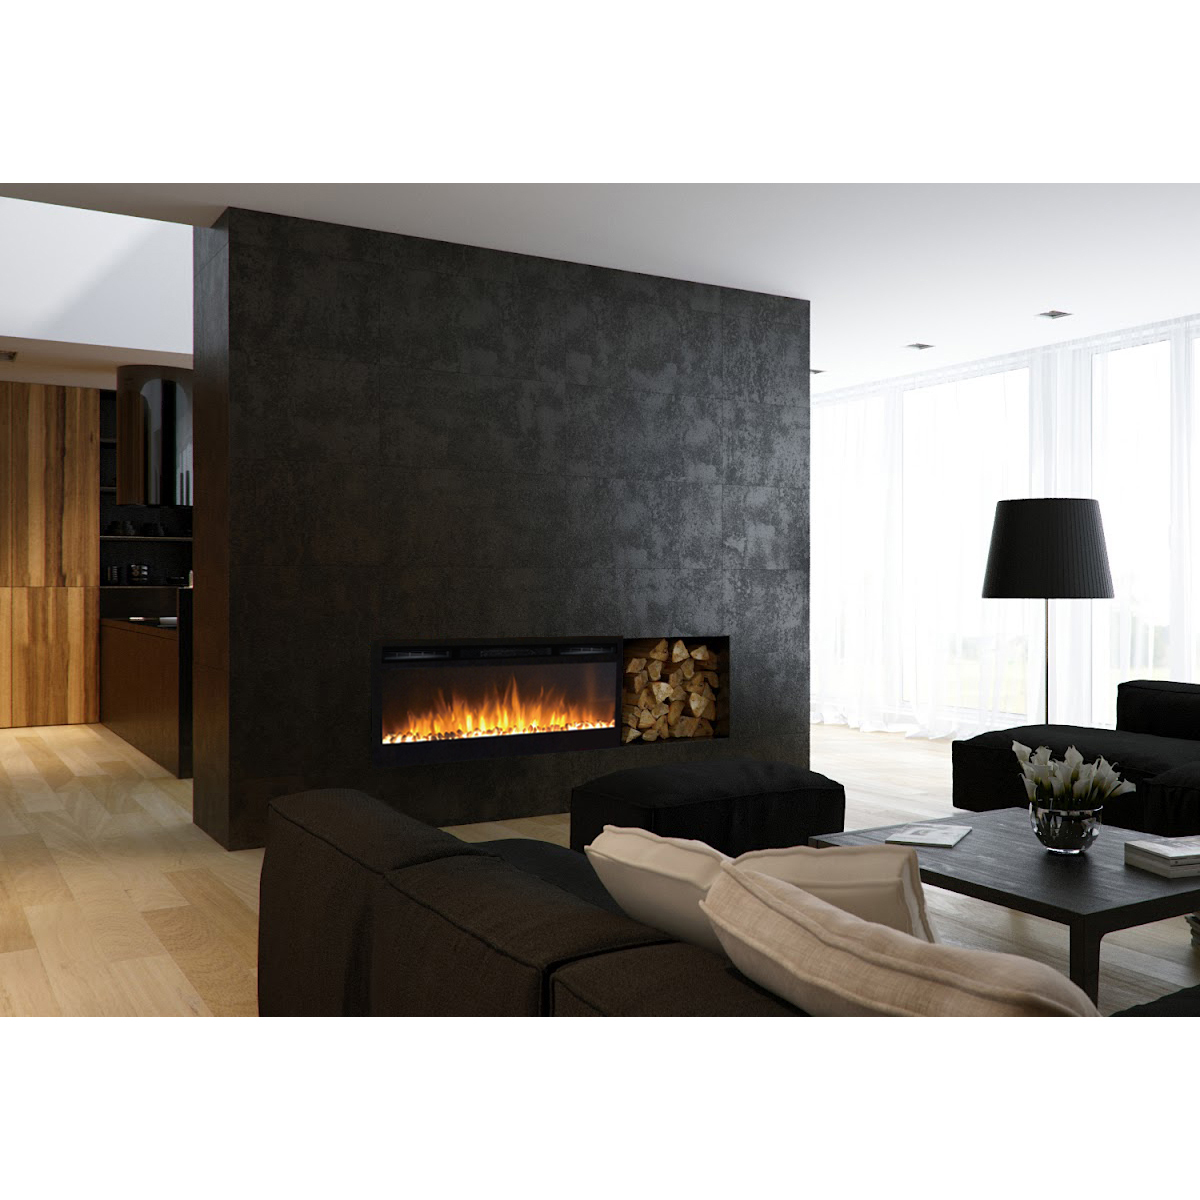 recessed electric fireplace dimplex lexington 35 inch builtin ventless heater recessed wall mounted electric fireplace pebble